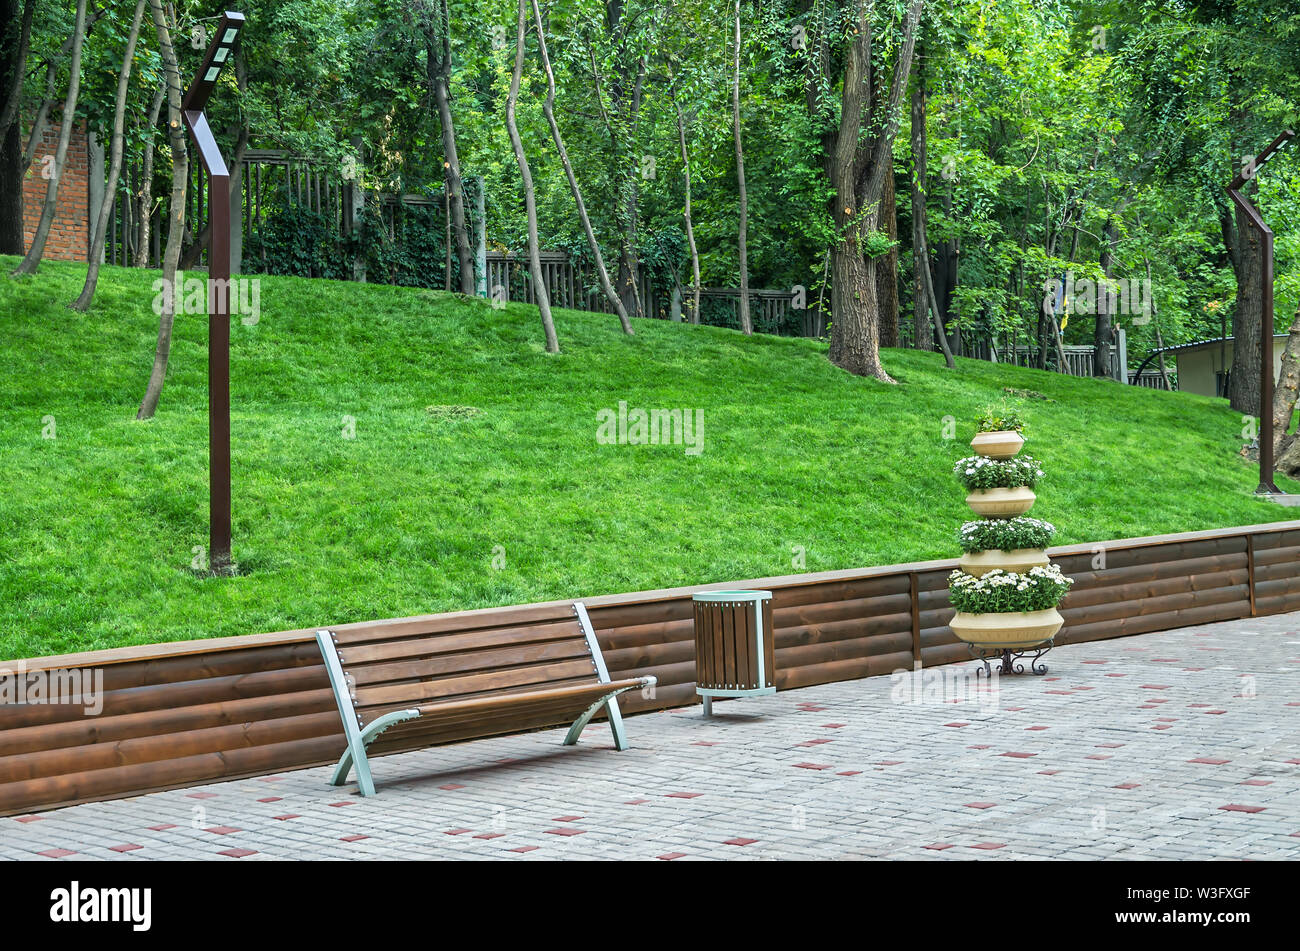 Recreation area with bench, a flower pot and trash can in the old city park - Stock Image